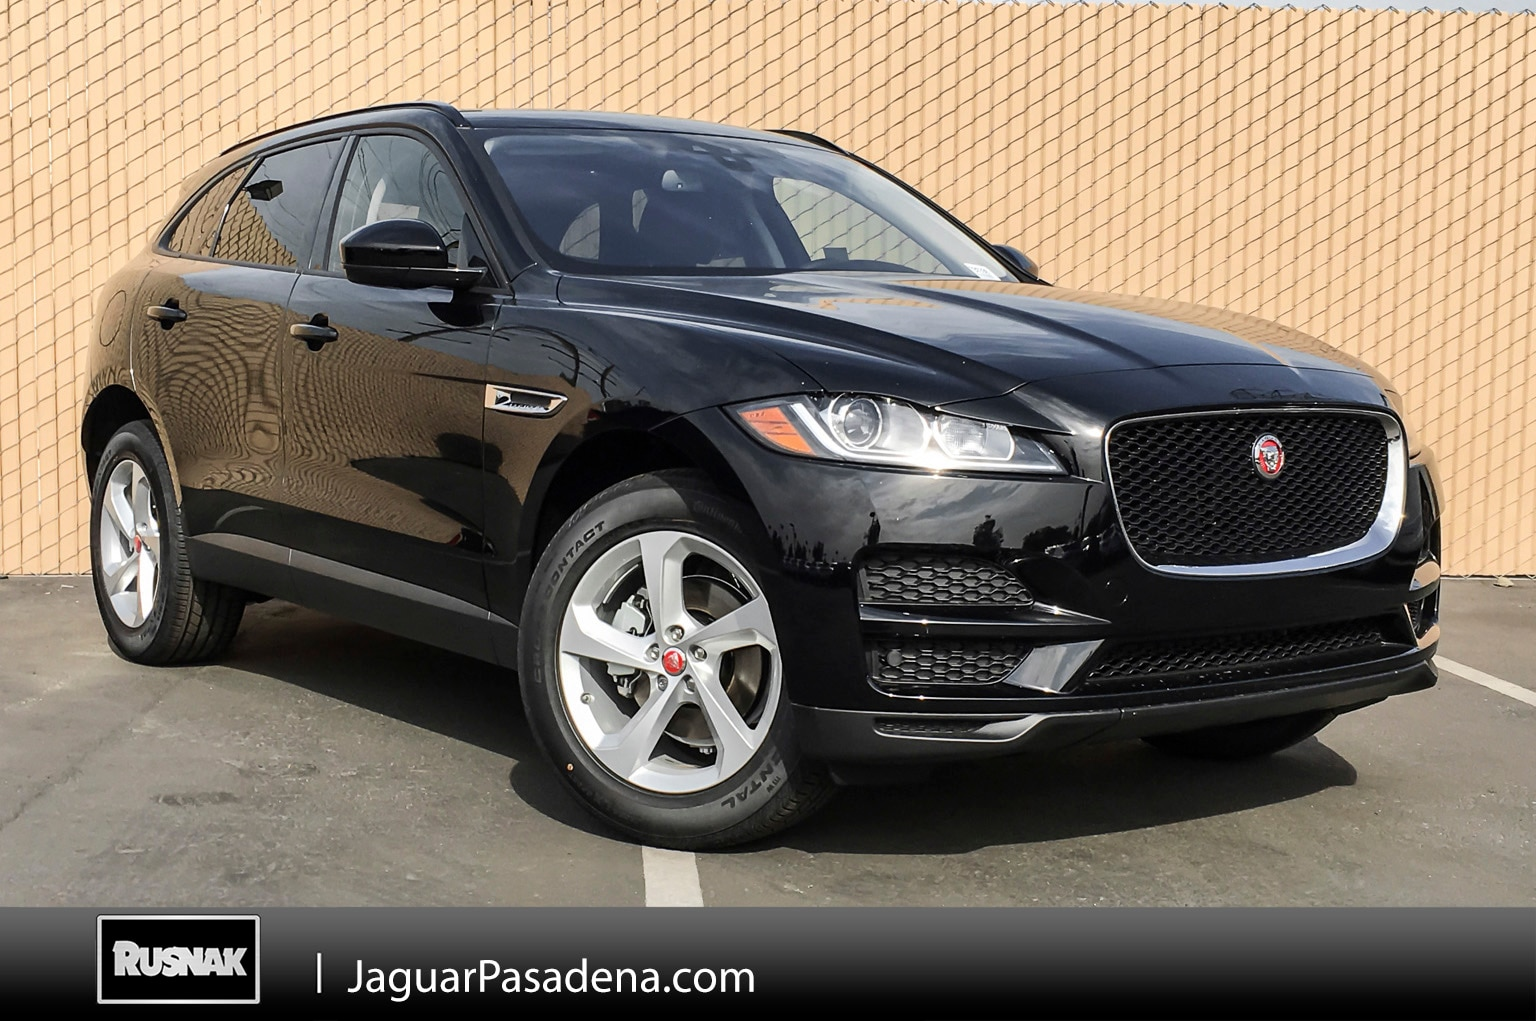 2018 Jaguar F-Pace: New Engine, New Trim, Price >> Buy Or Lease New 2018 Jaguar F Pace Los Angeles Stock 780398